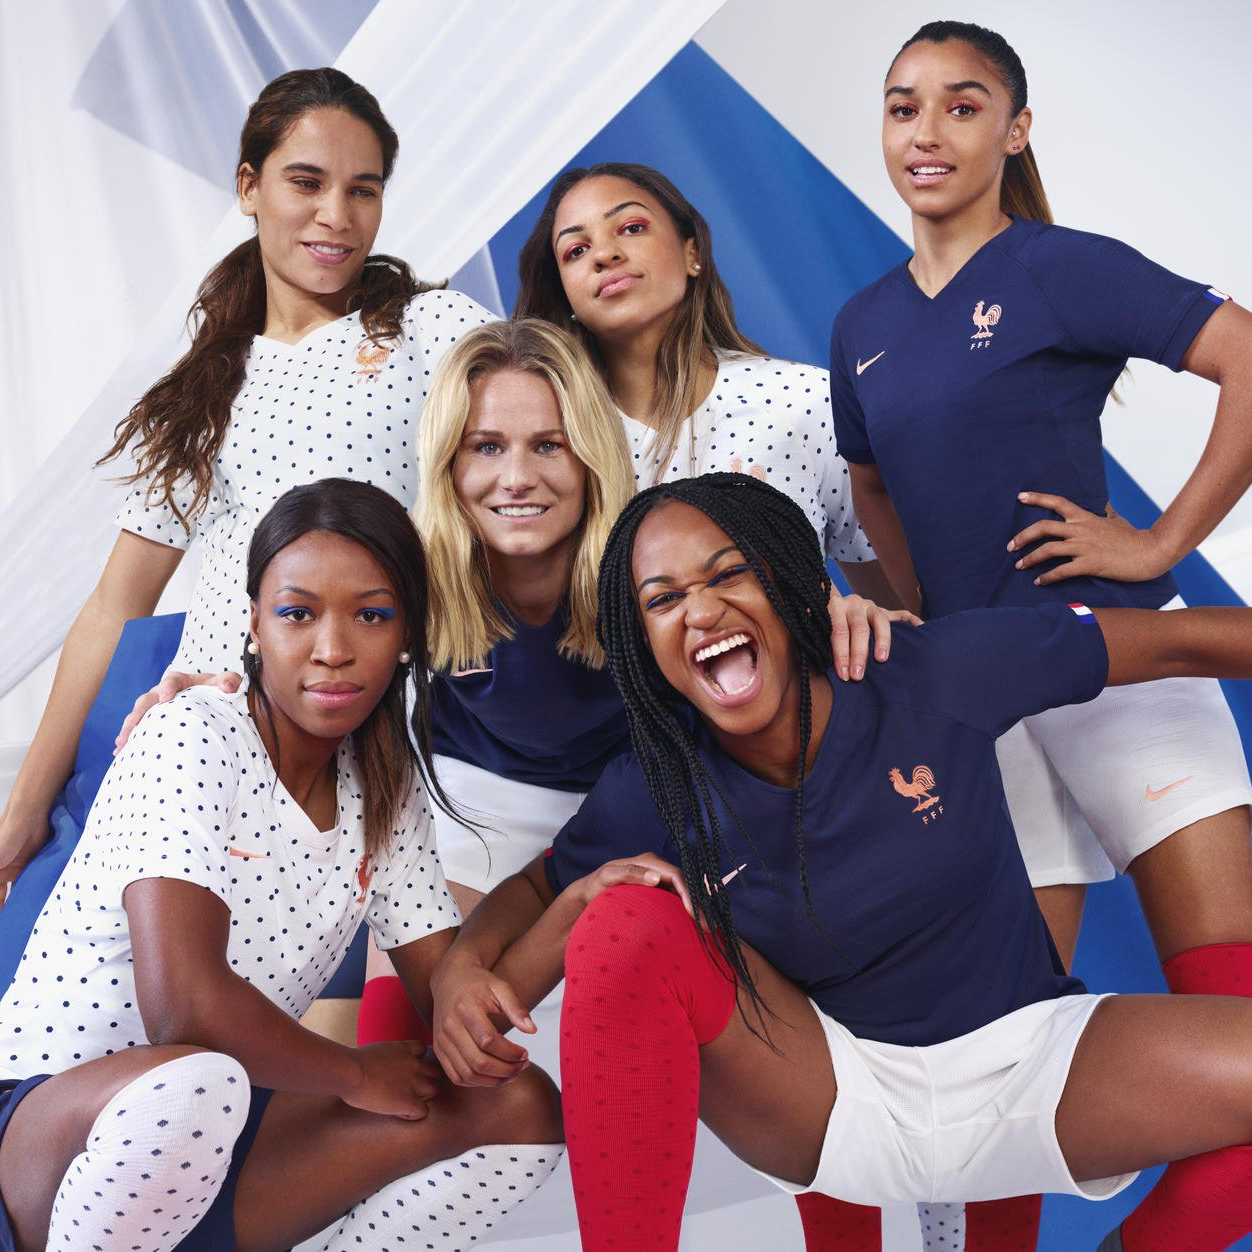 Maillot Femme France 2020 Nike Football Foot Coupe Du Monde freeshipping - Foot Online